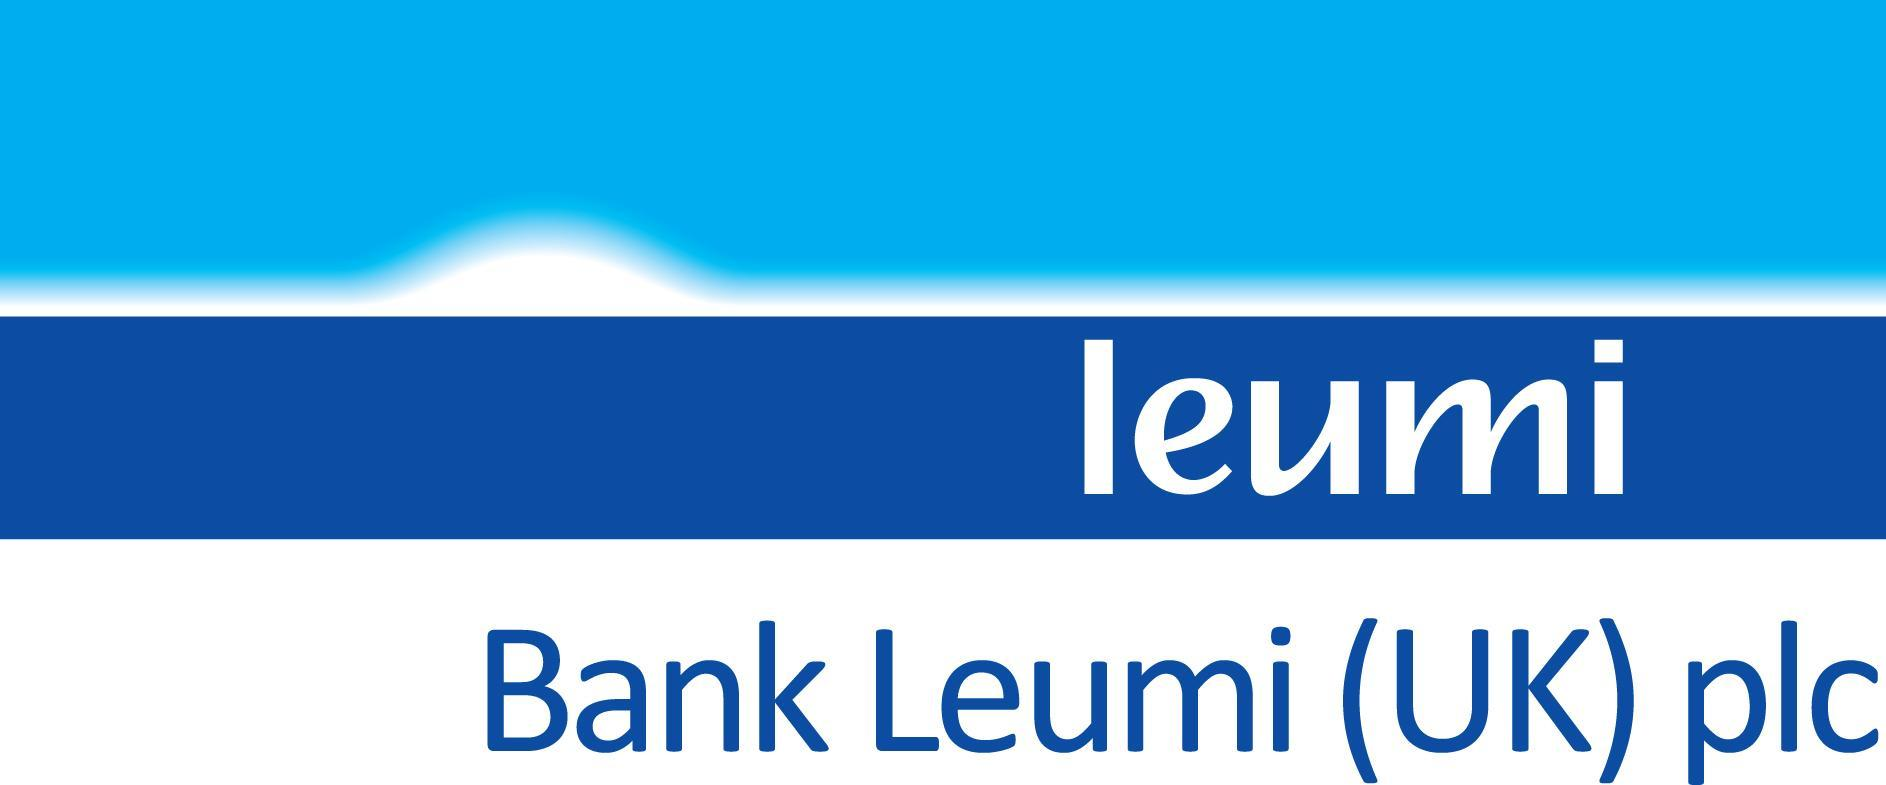 bank-leumi-uk_logo PLAIN.jpg